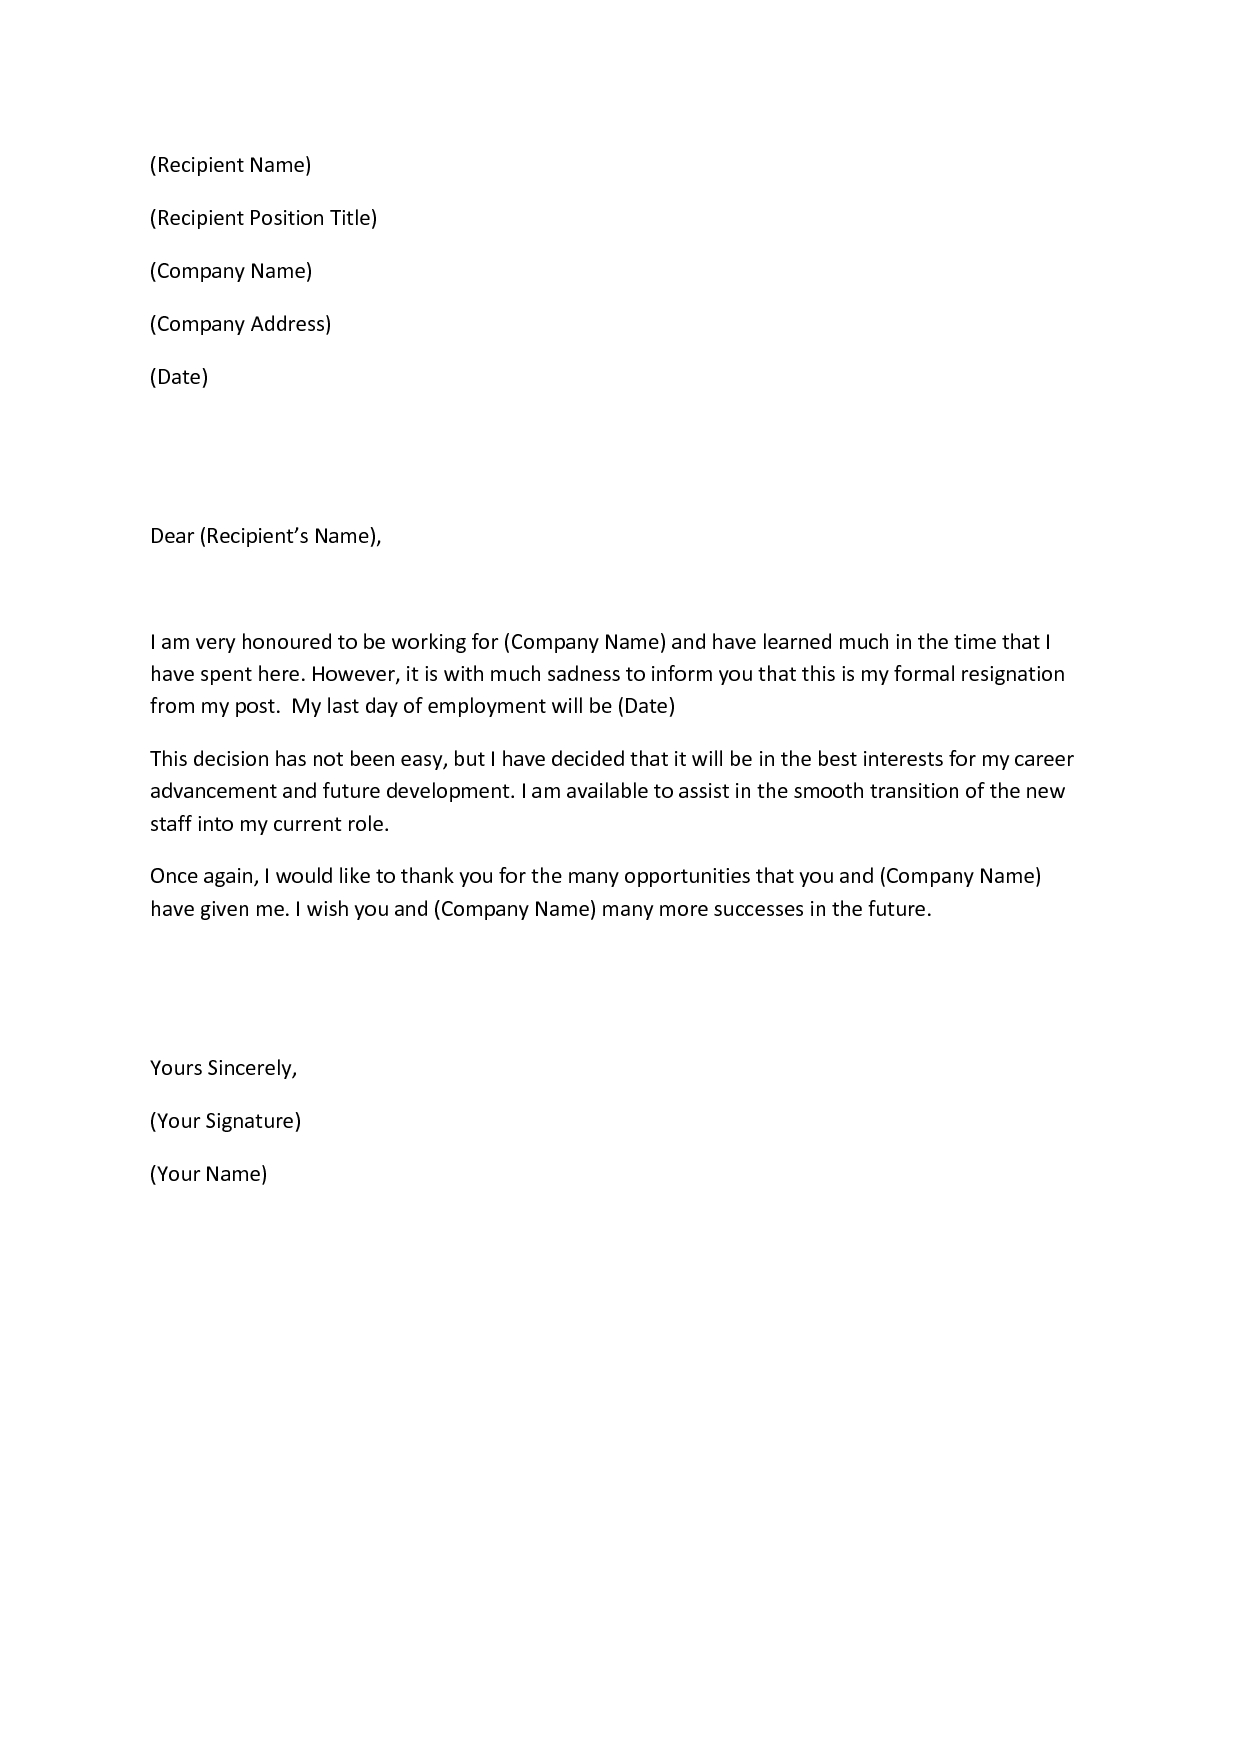 609 Letter Template Free - This Article Will Include Multiple Sample Letters for Quitting A Job